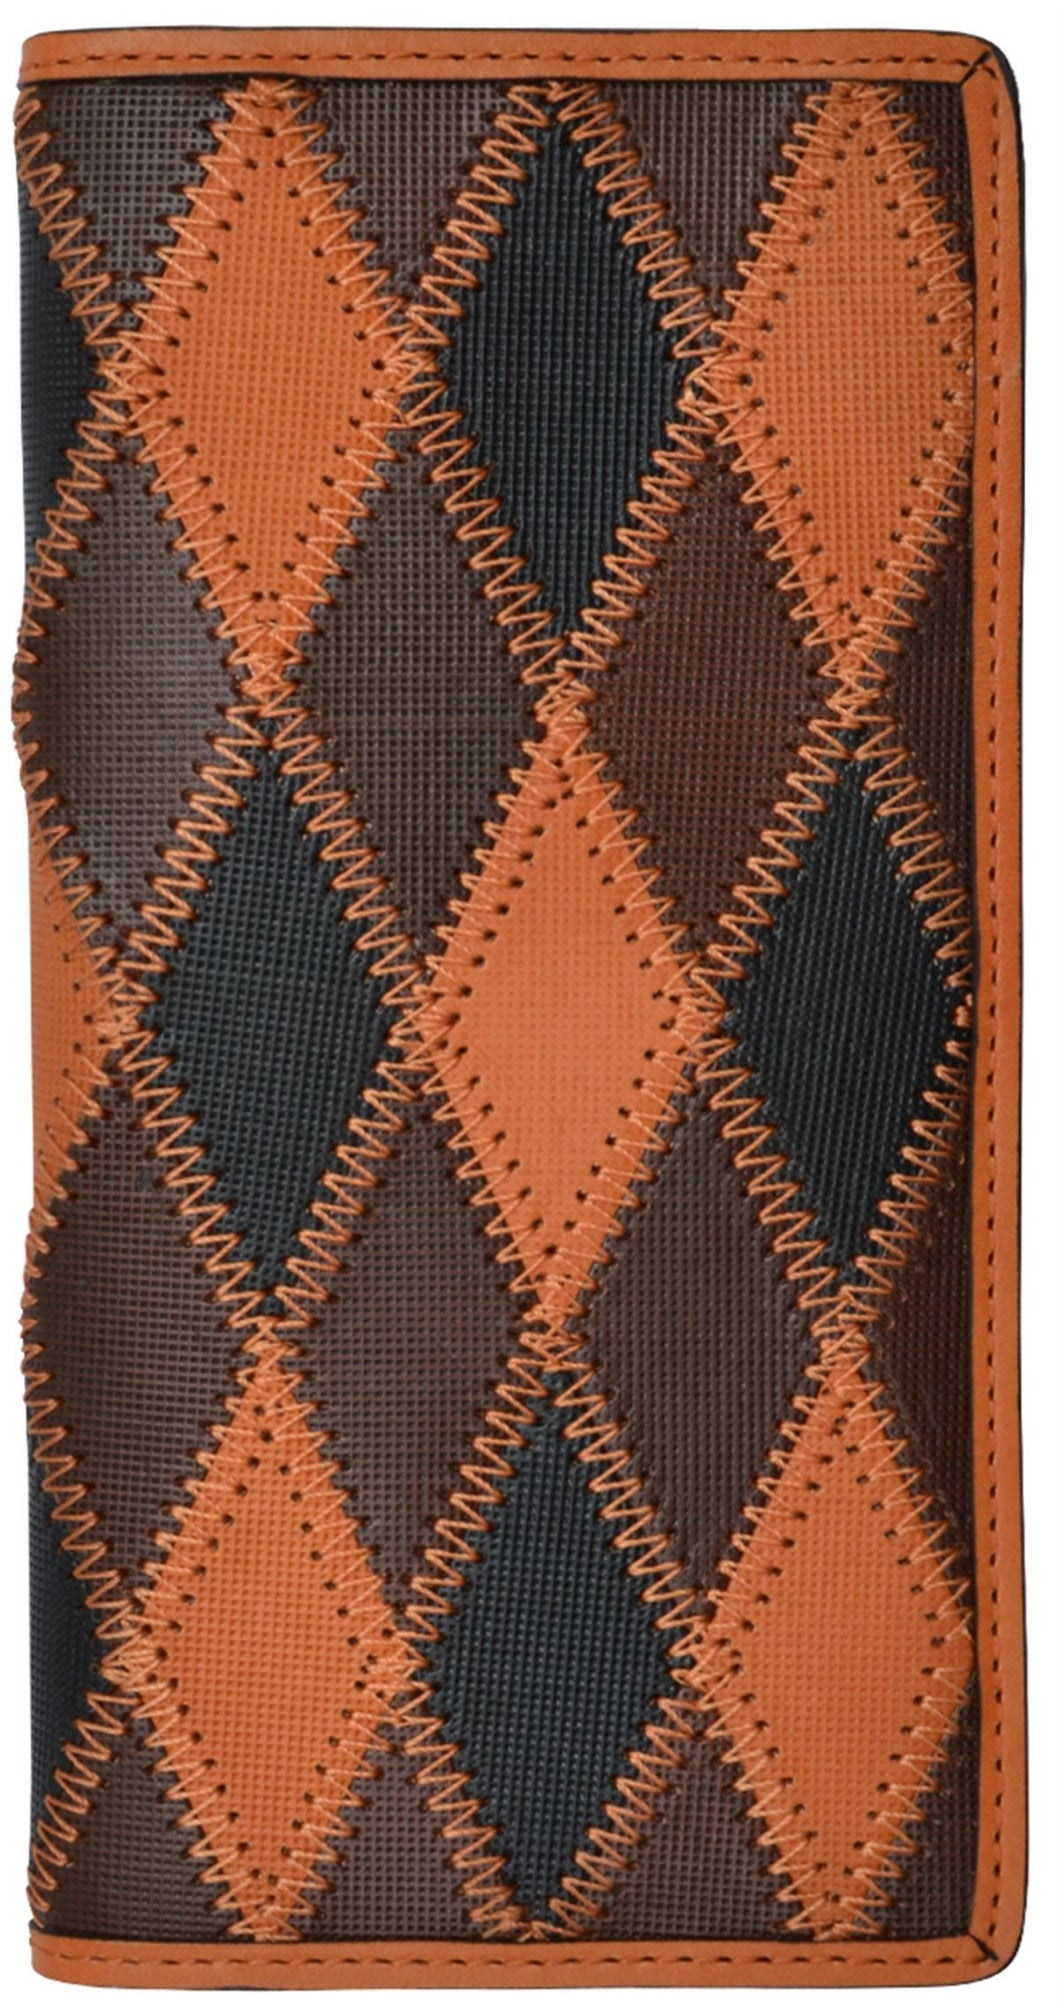 Multicolored Western Rodeo Wallet